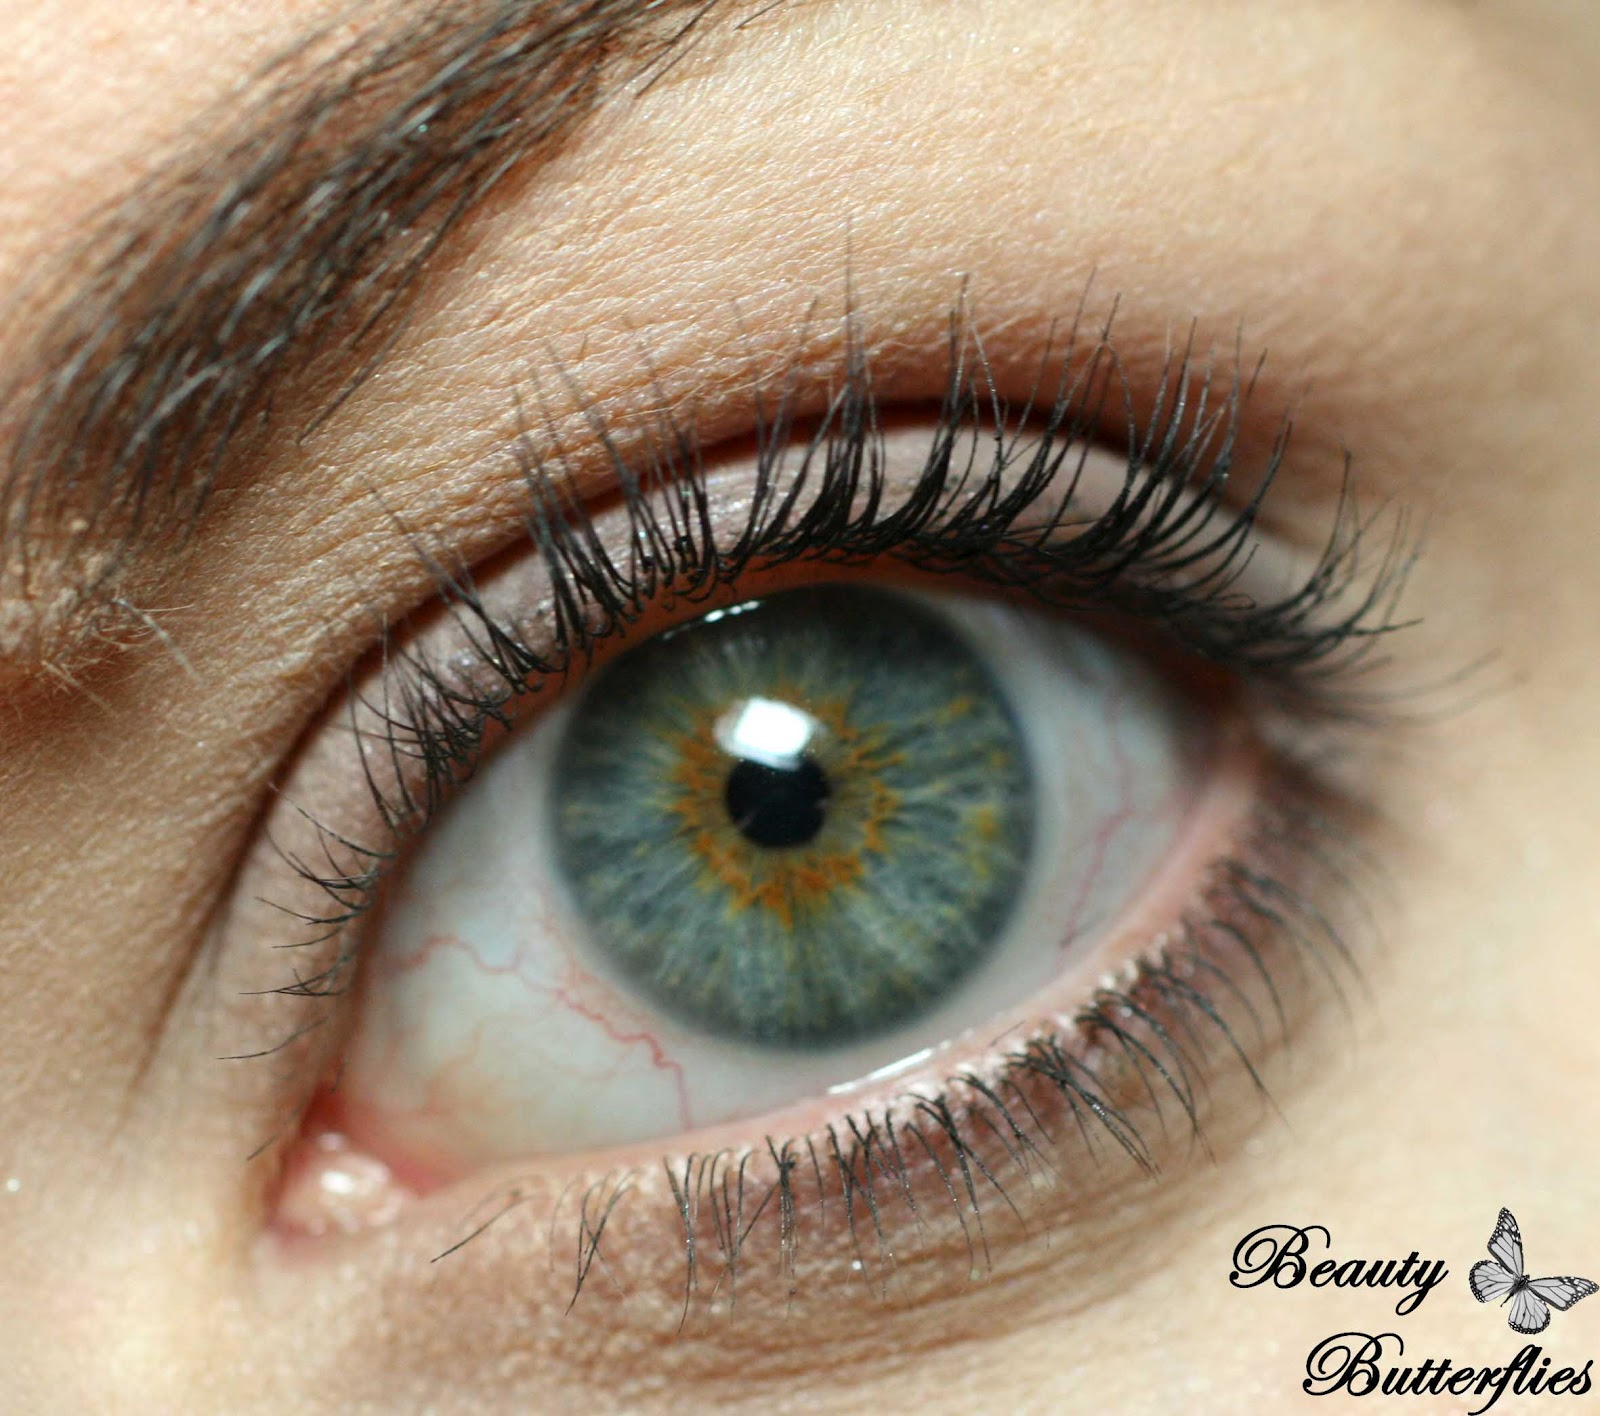 Naturally Glossy Mascara by Clinique #18